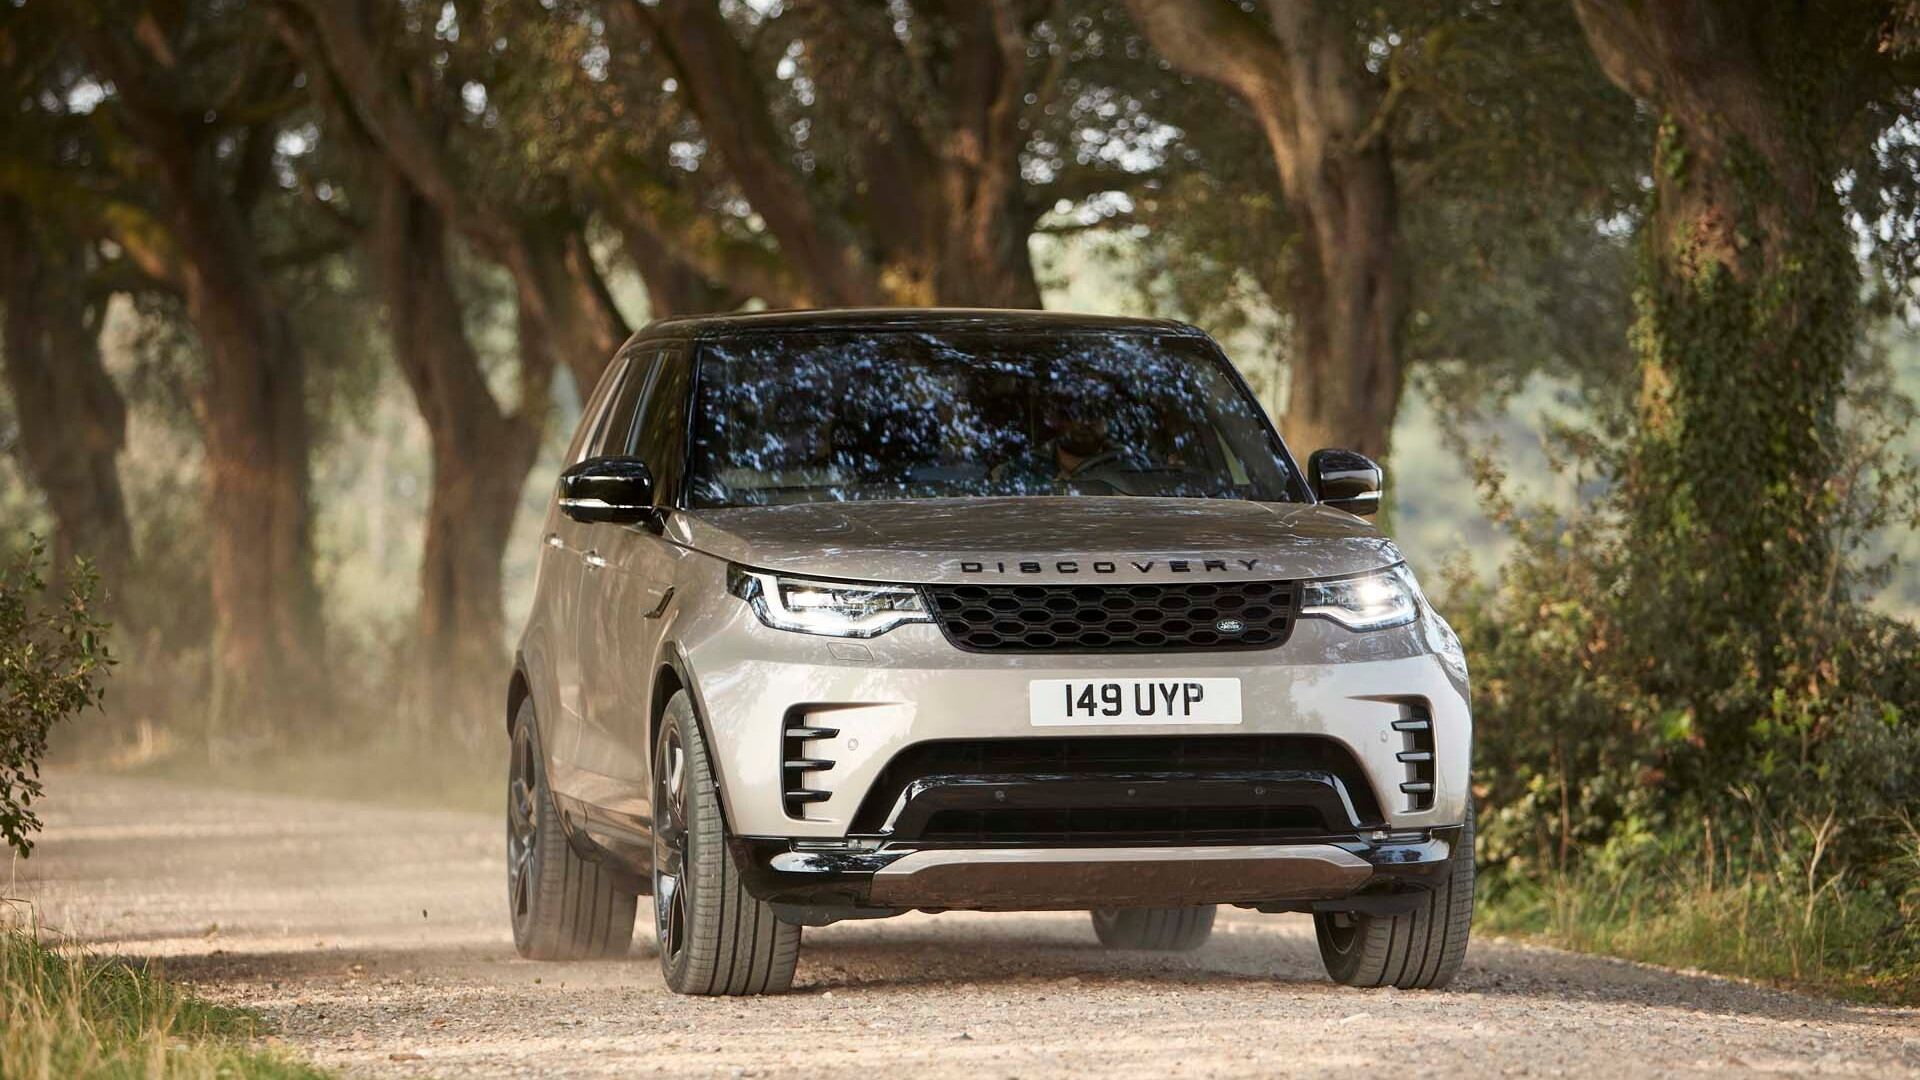 Land Rover Discovery: Price, Specs, Features